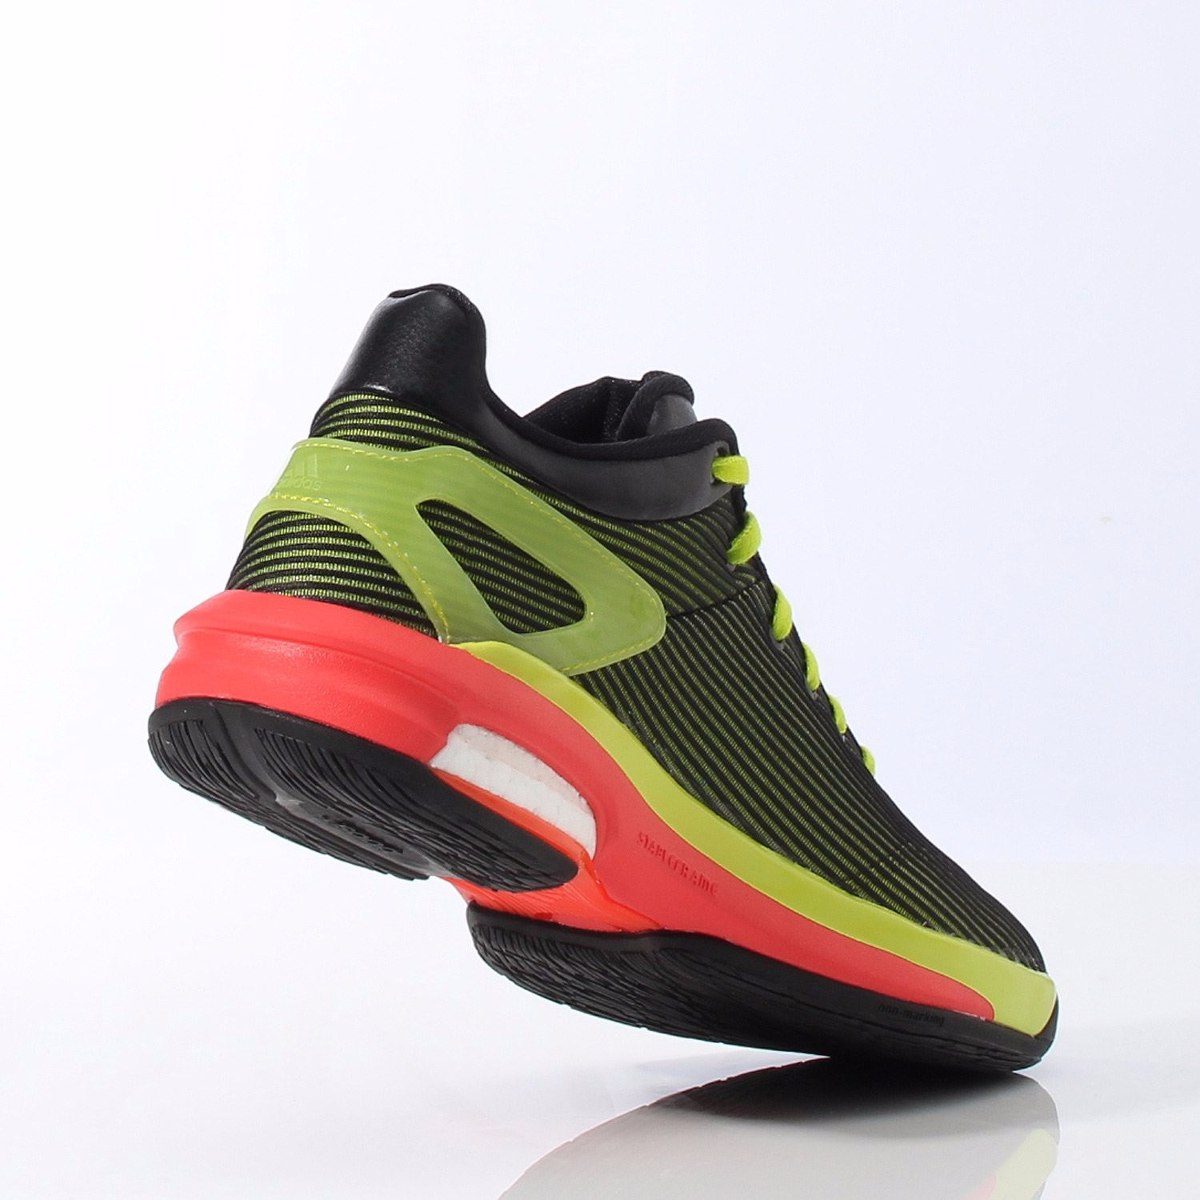 494033908e2 tenis adidas crazy light boost low basquete. Carregando zoom.